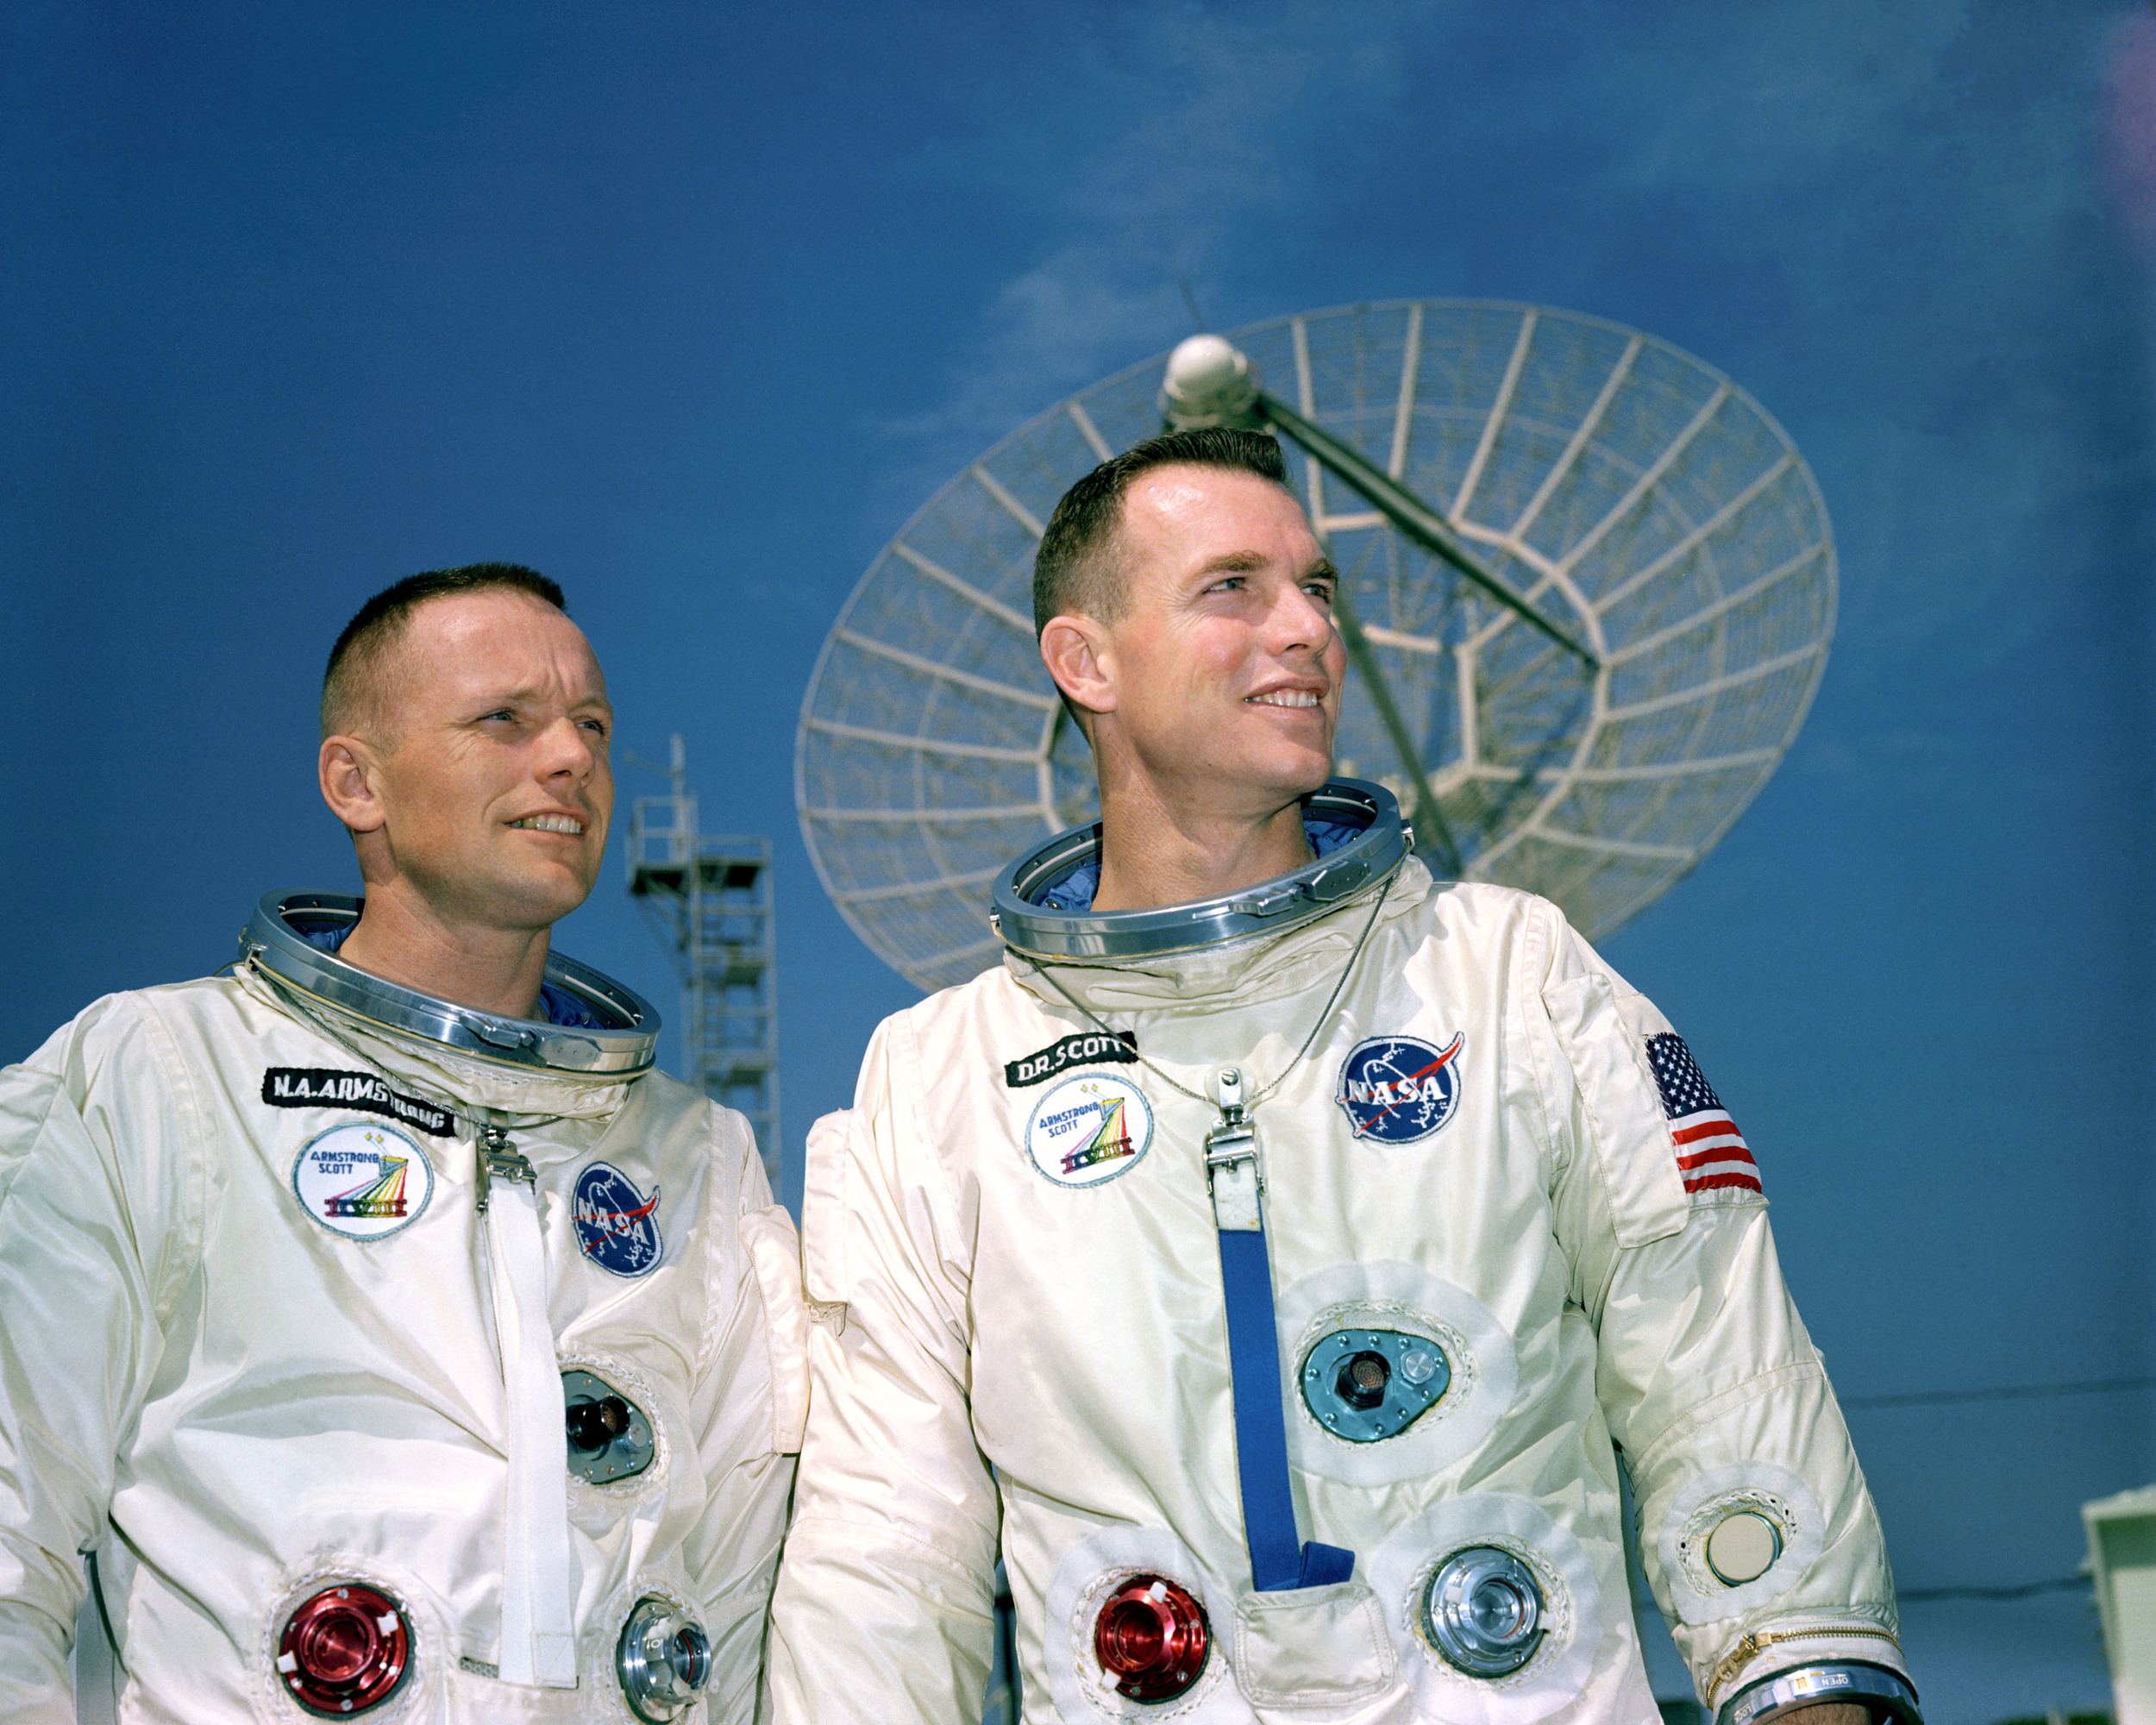 11 March 1966 -Astronauts Neil A. Armstrong (left), command pilot, and David R. Scott, pilot, the Gemini-8 prime crew, during a photo session outside the Kennedy Space Center (KSC) Mission Control Center. They are standing in front of a radar dish. Photo credit: NASA